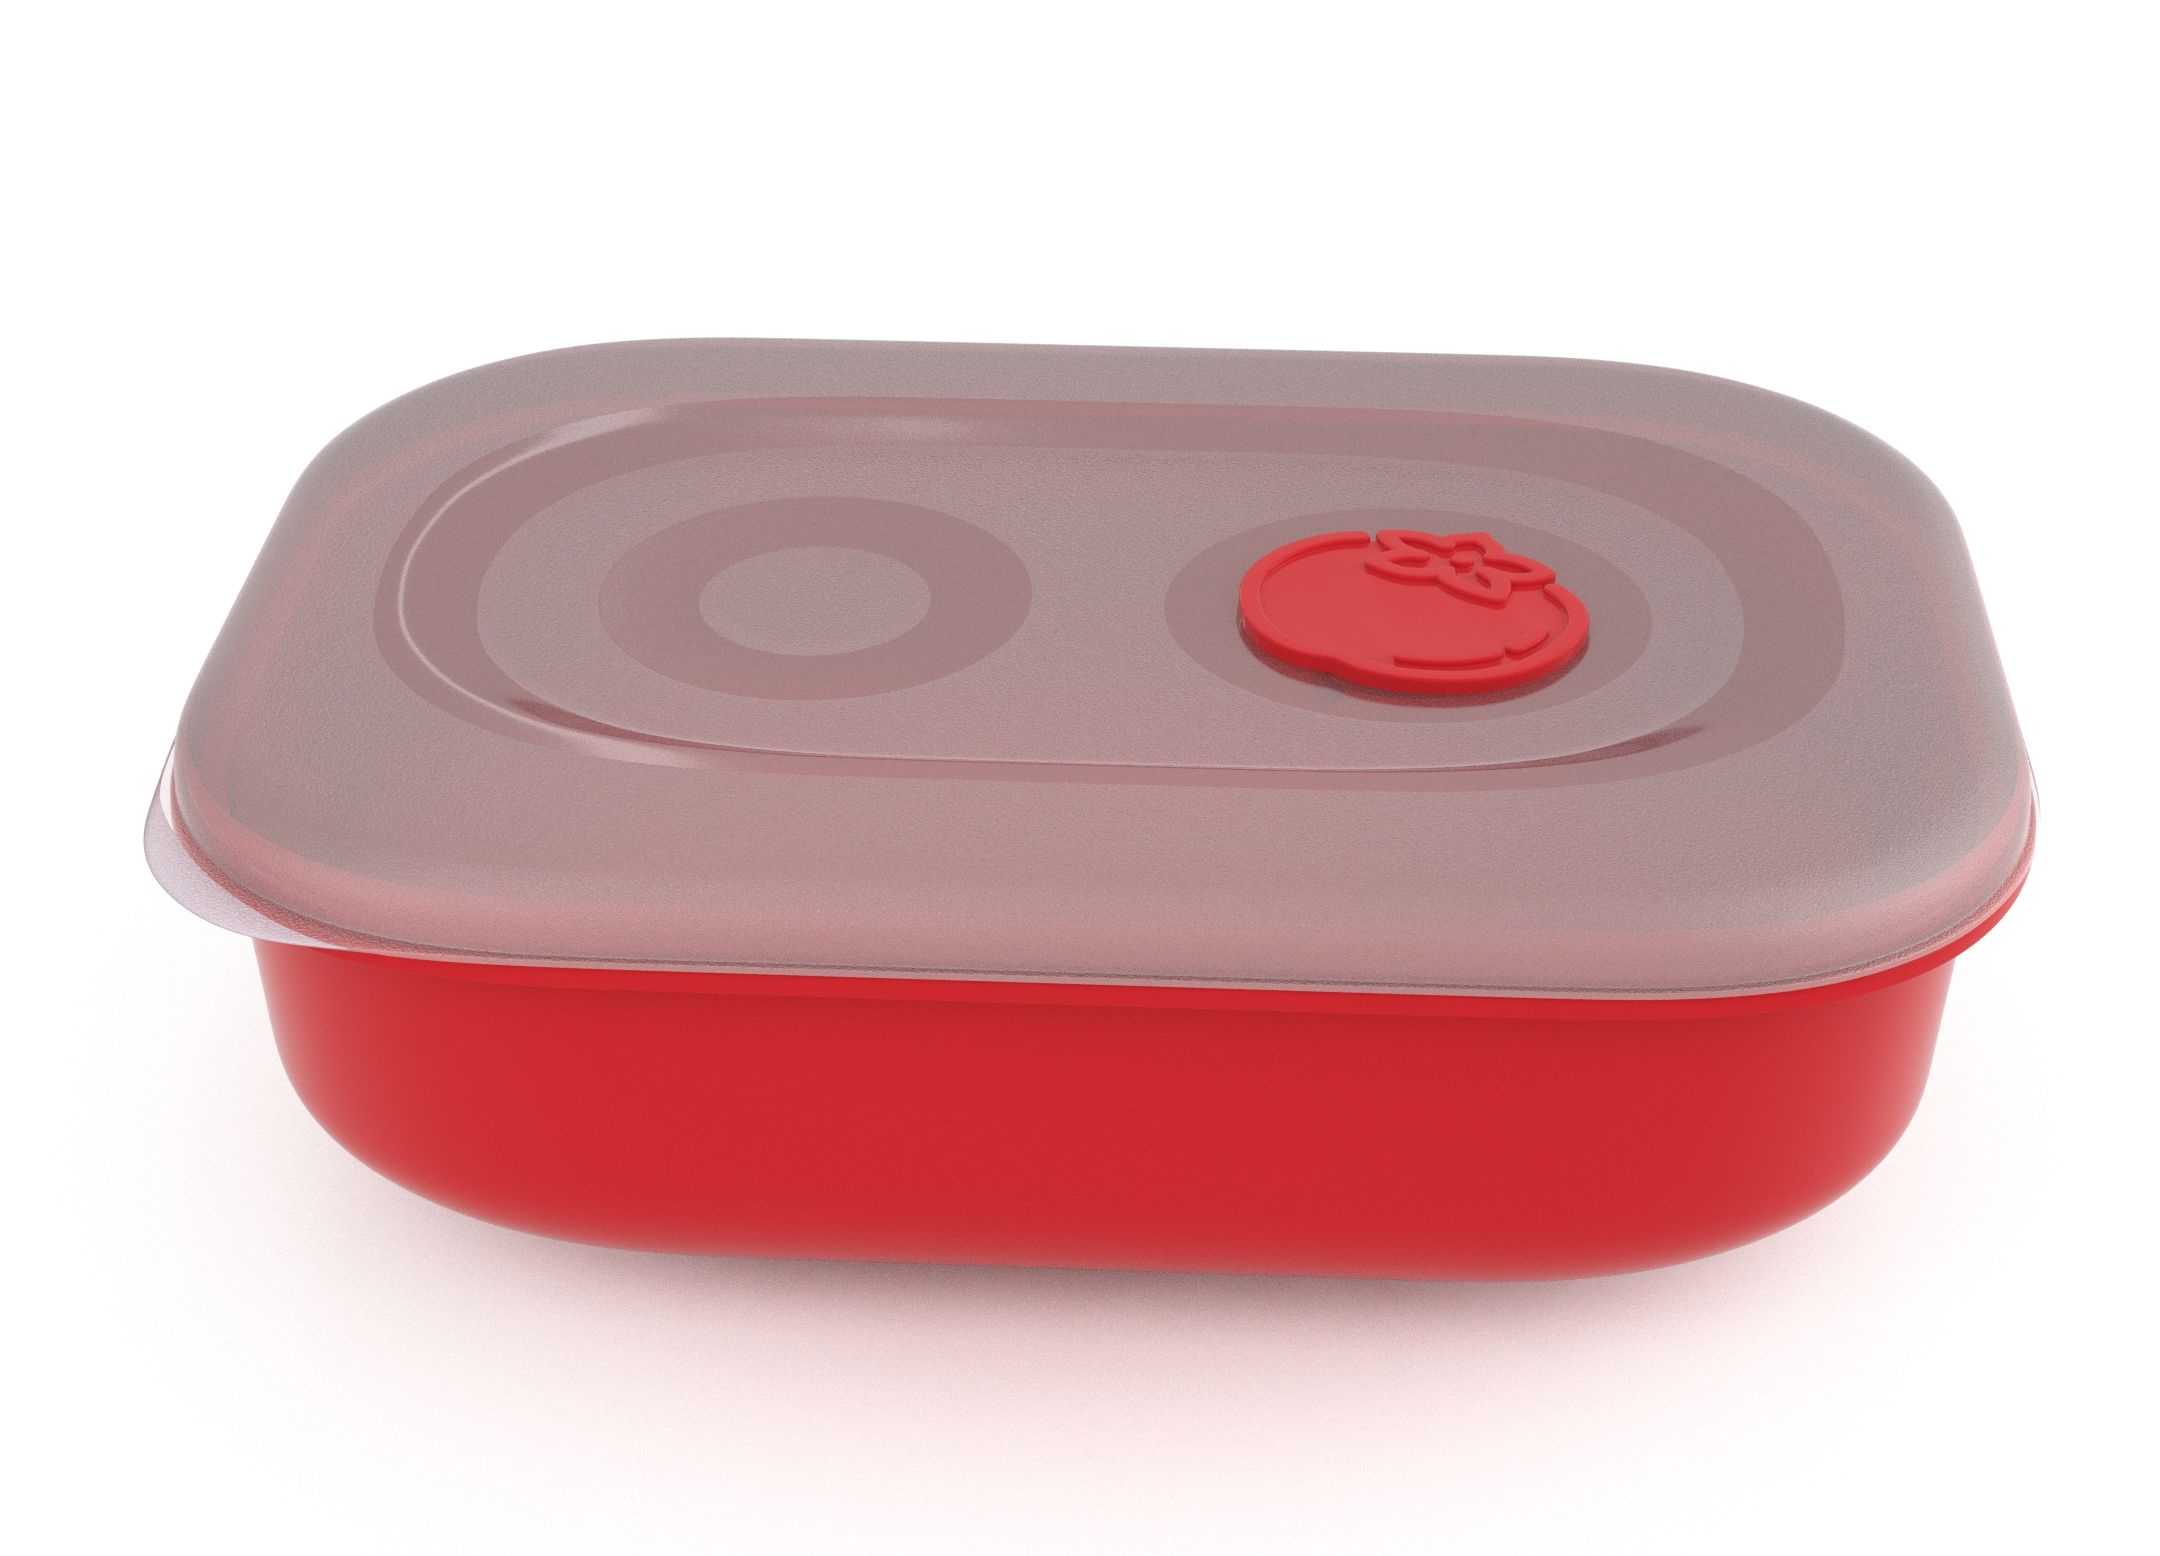 Tama Lock Rectangular Food Container 3L 9302 with Steam Release Tomato Valve Bright Red